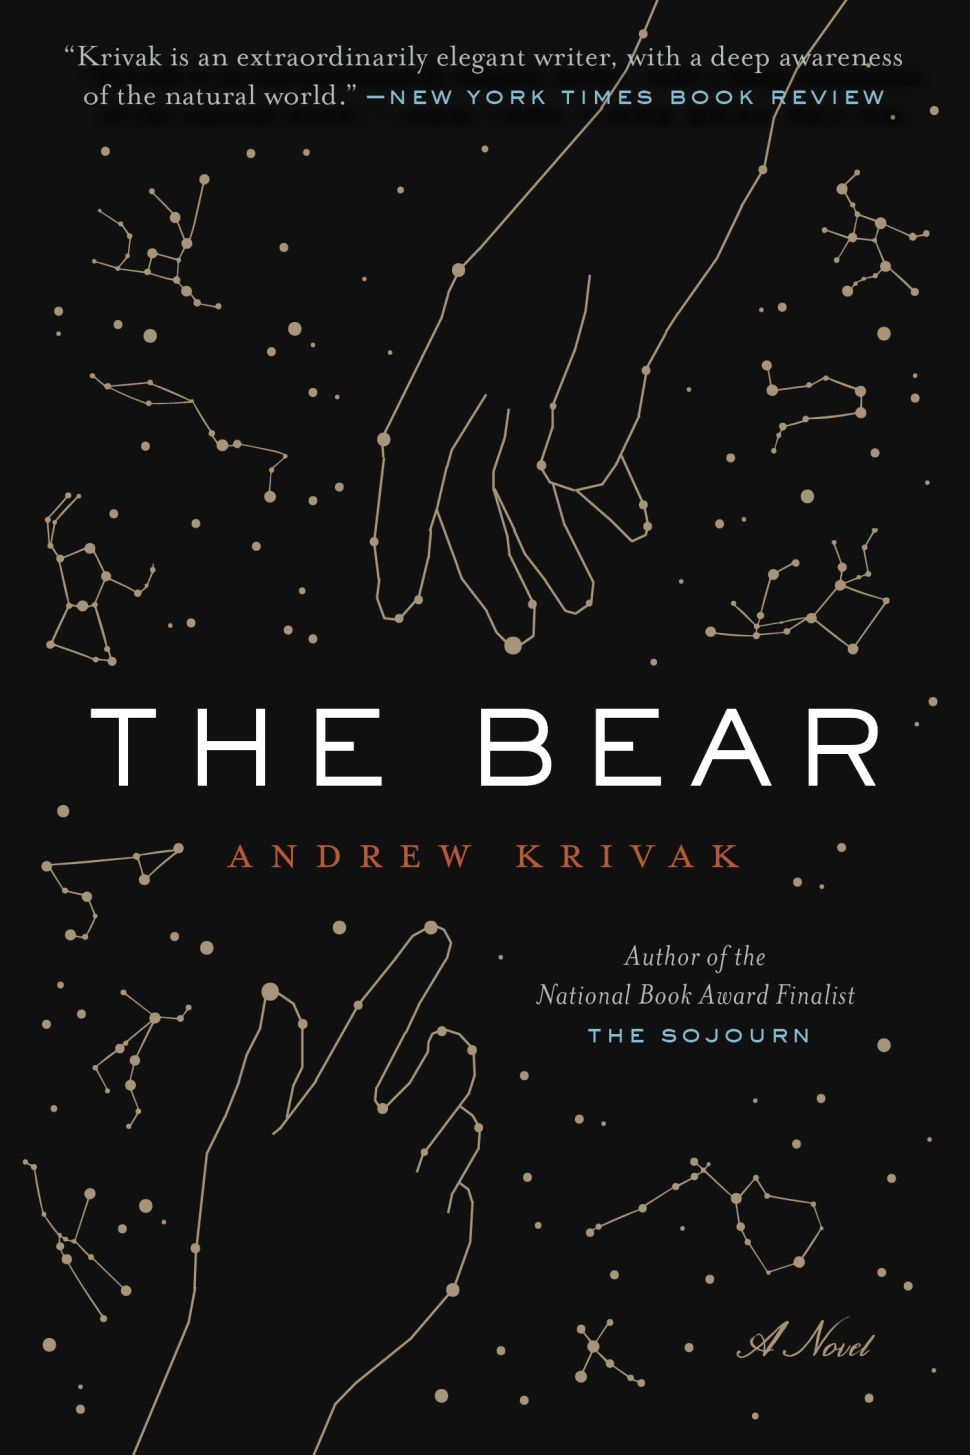 Andrew Krivak's 'The Bear' Imagines a Lush, Post-Apocalyptic Earth